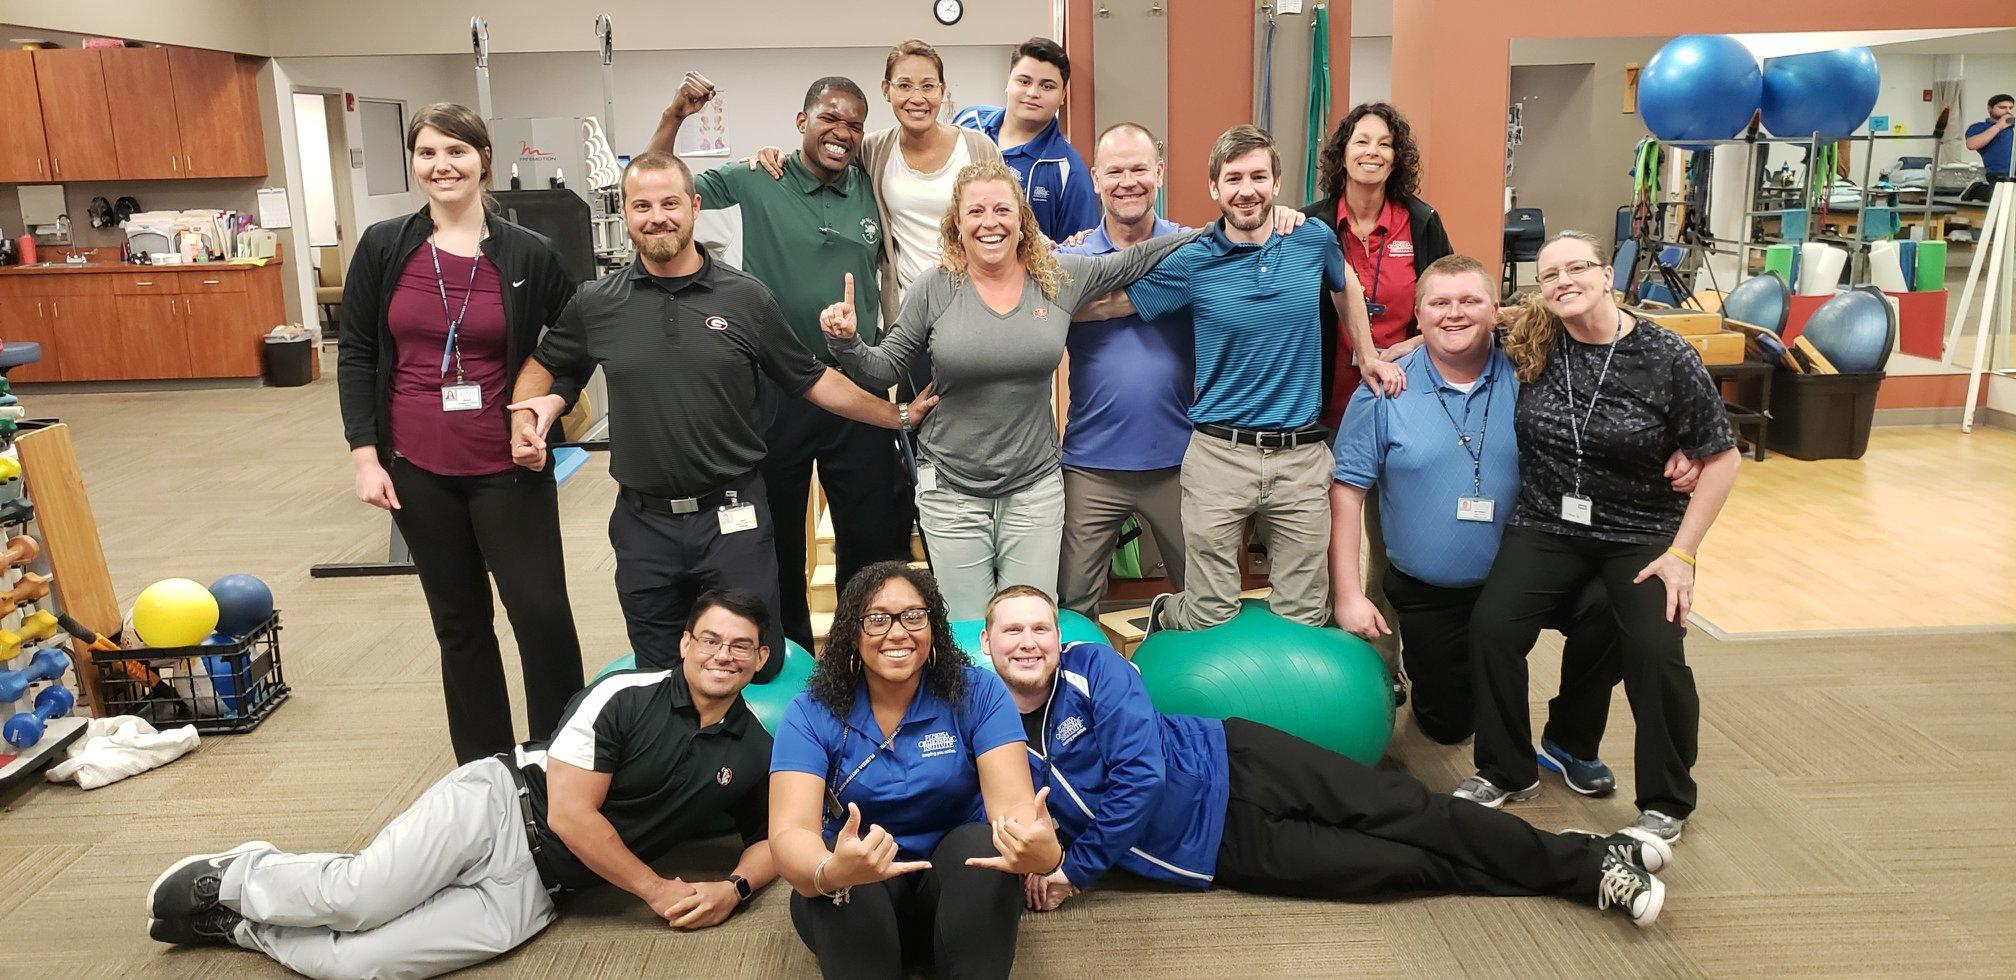 Florida Orthopaedic Institute's Physical Therapy Team